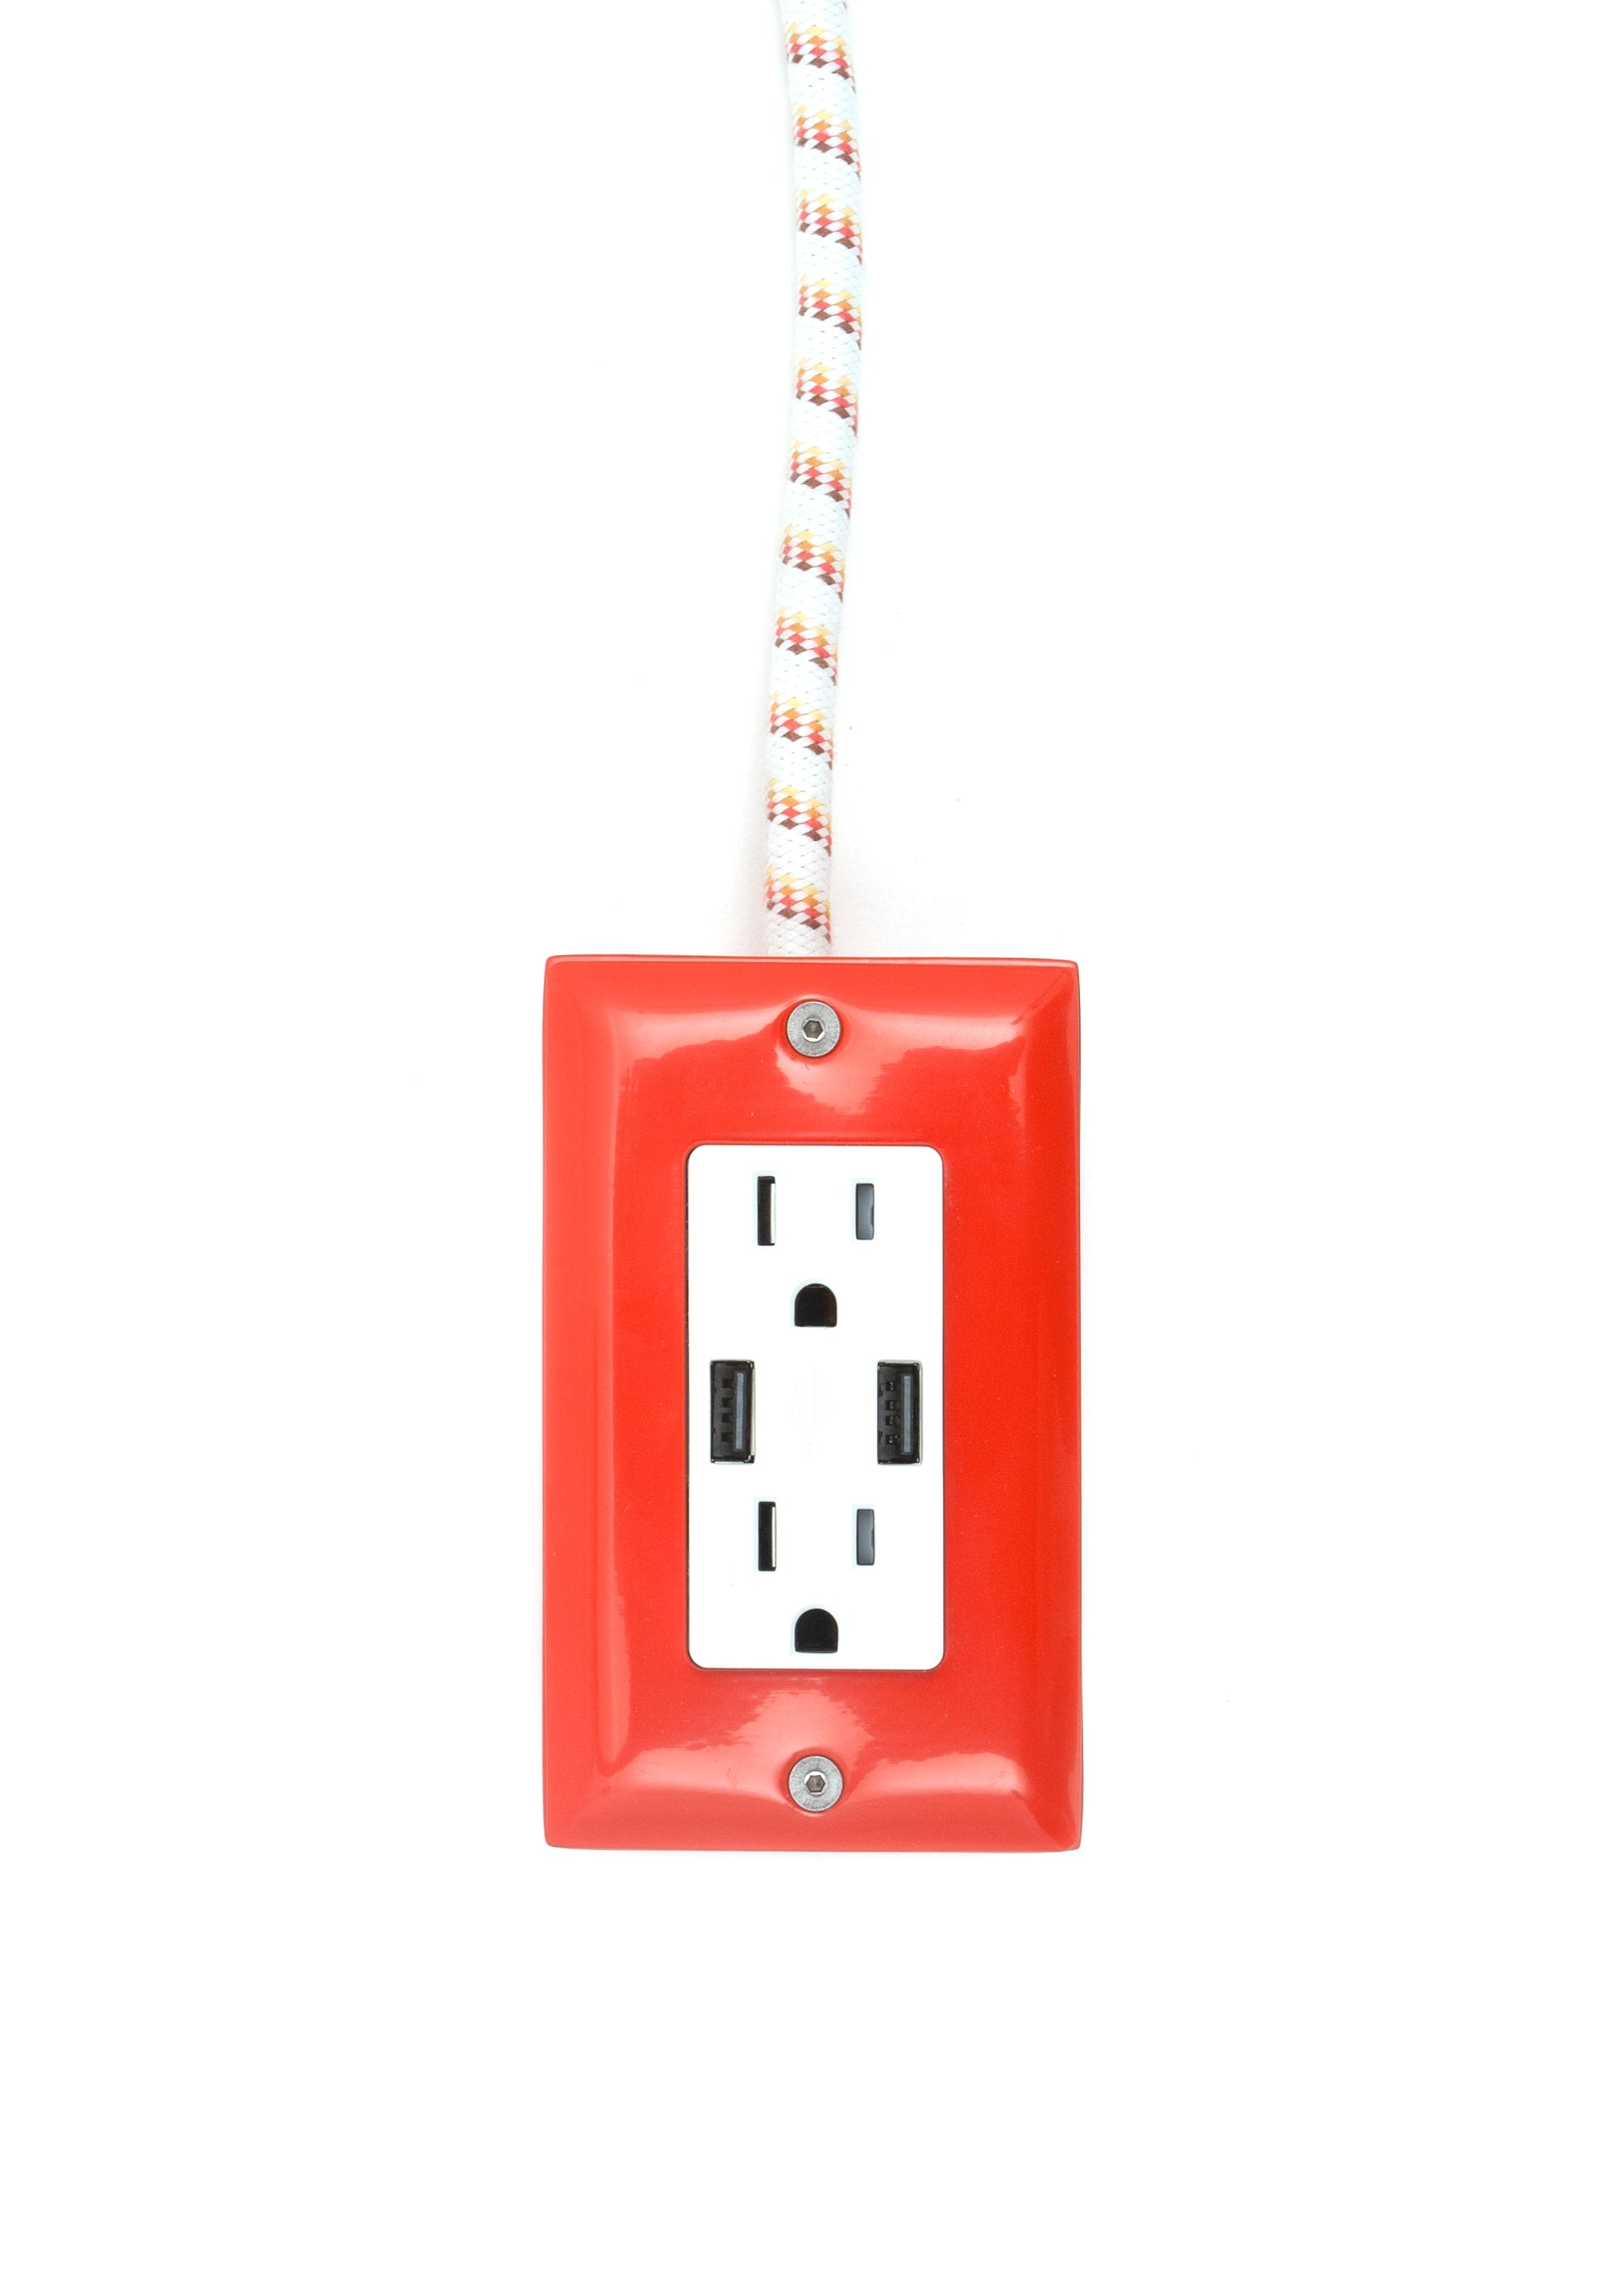 New! The First Smart Chip Extension Cord - 12' Extō Dual-USB, Dual-Outlet - Venice